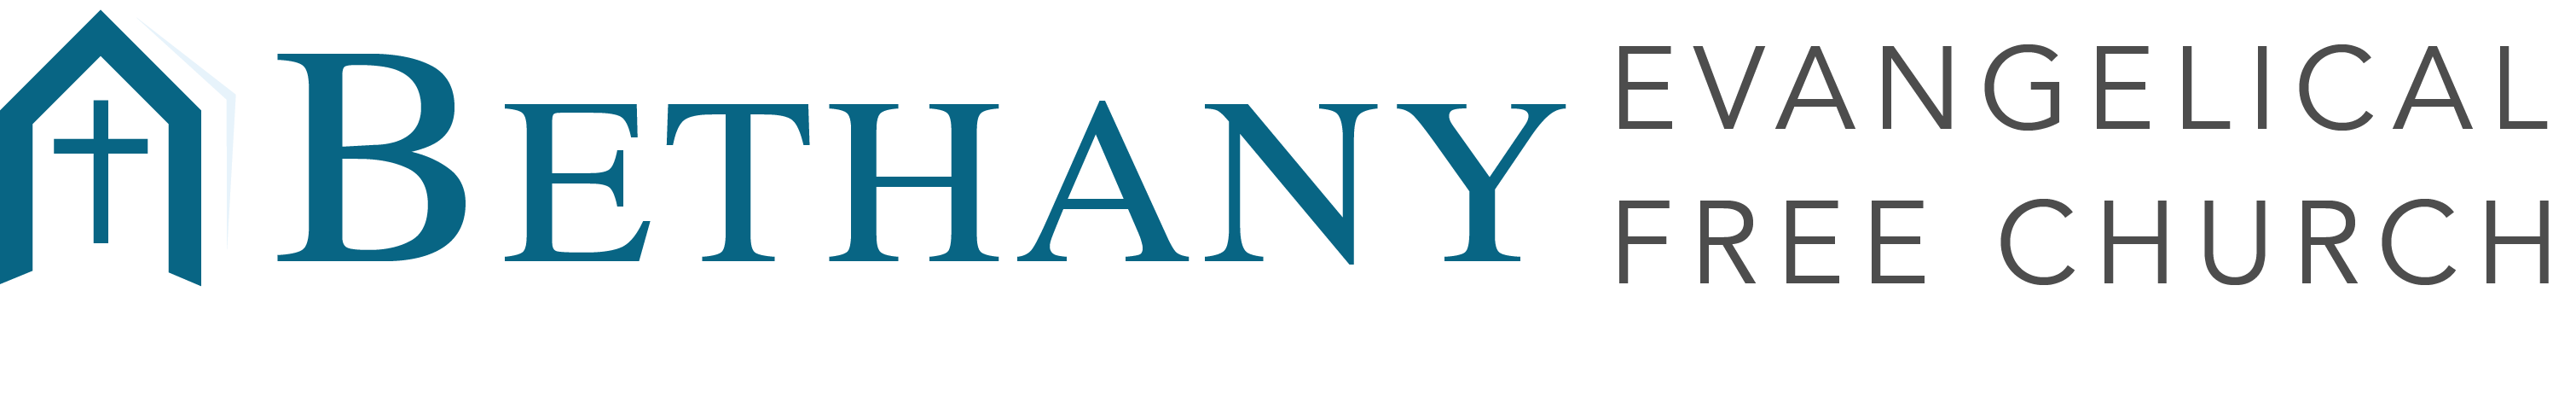 Bethany Evangelical Free Church Logo